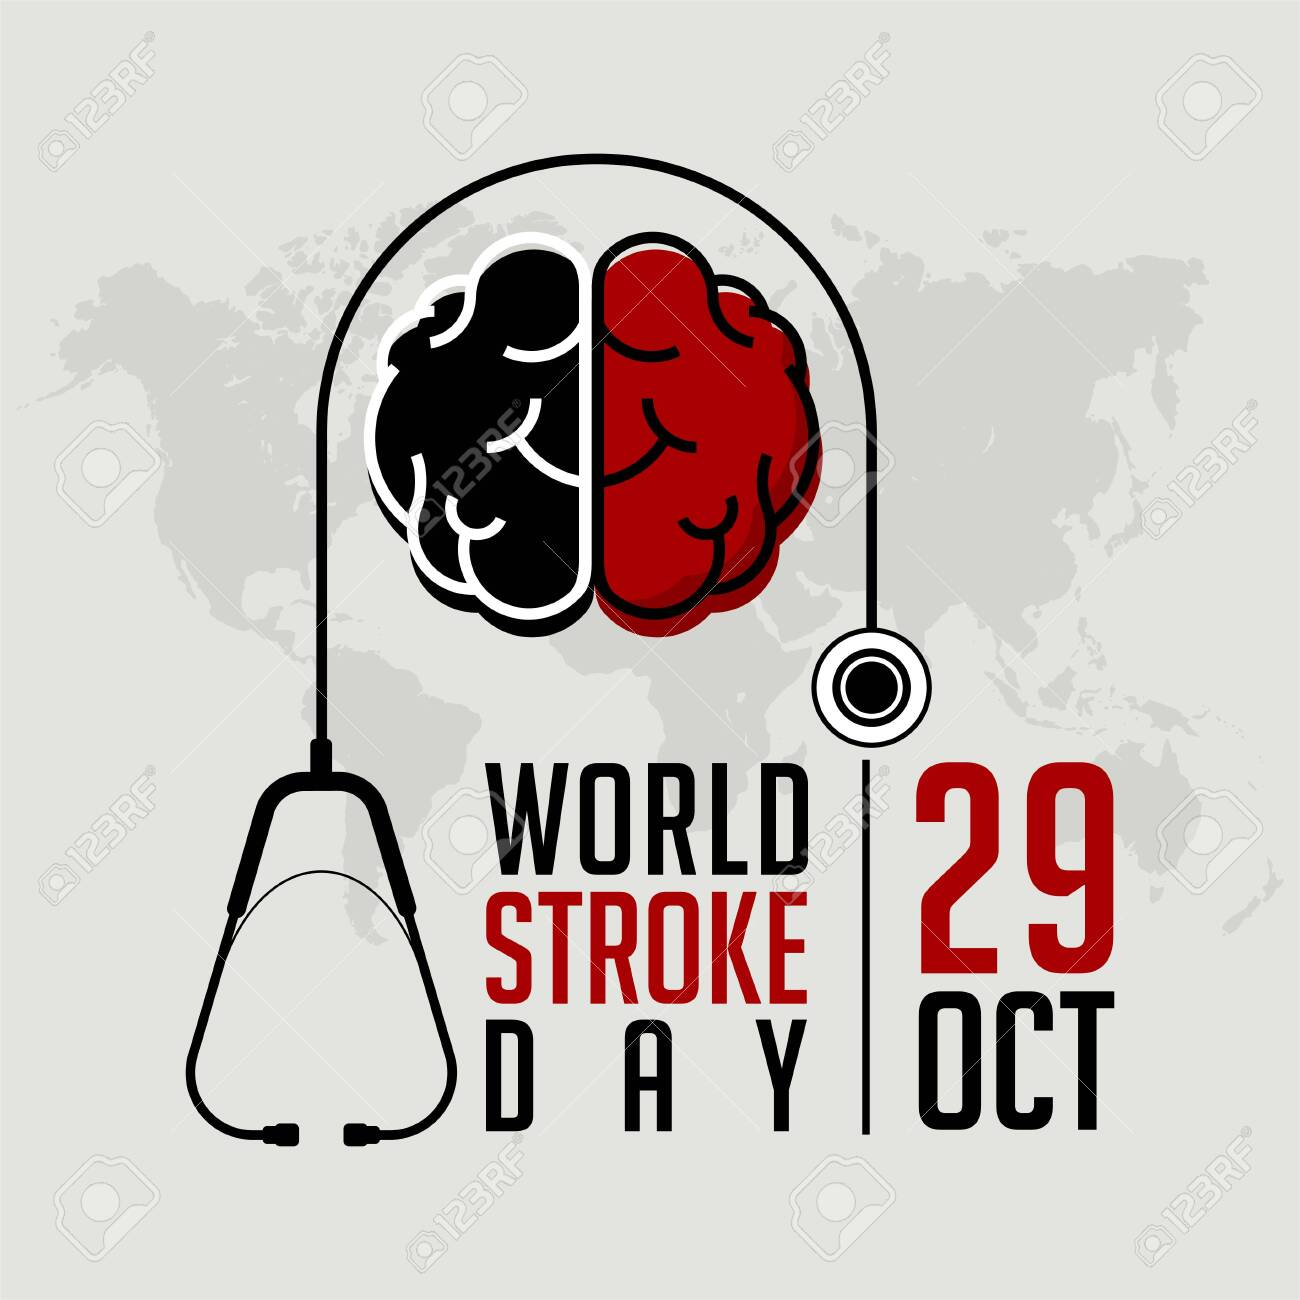 You are currently viewing World stroke day October 29th stay one step ahead of your health with the Quest Pulse Oximeter